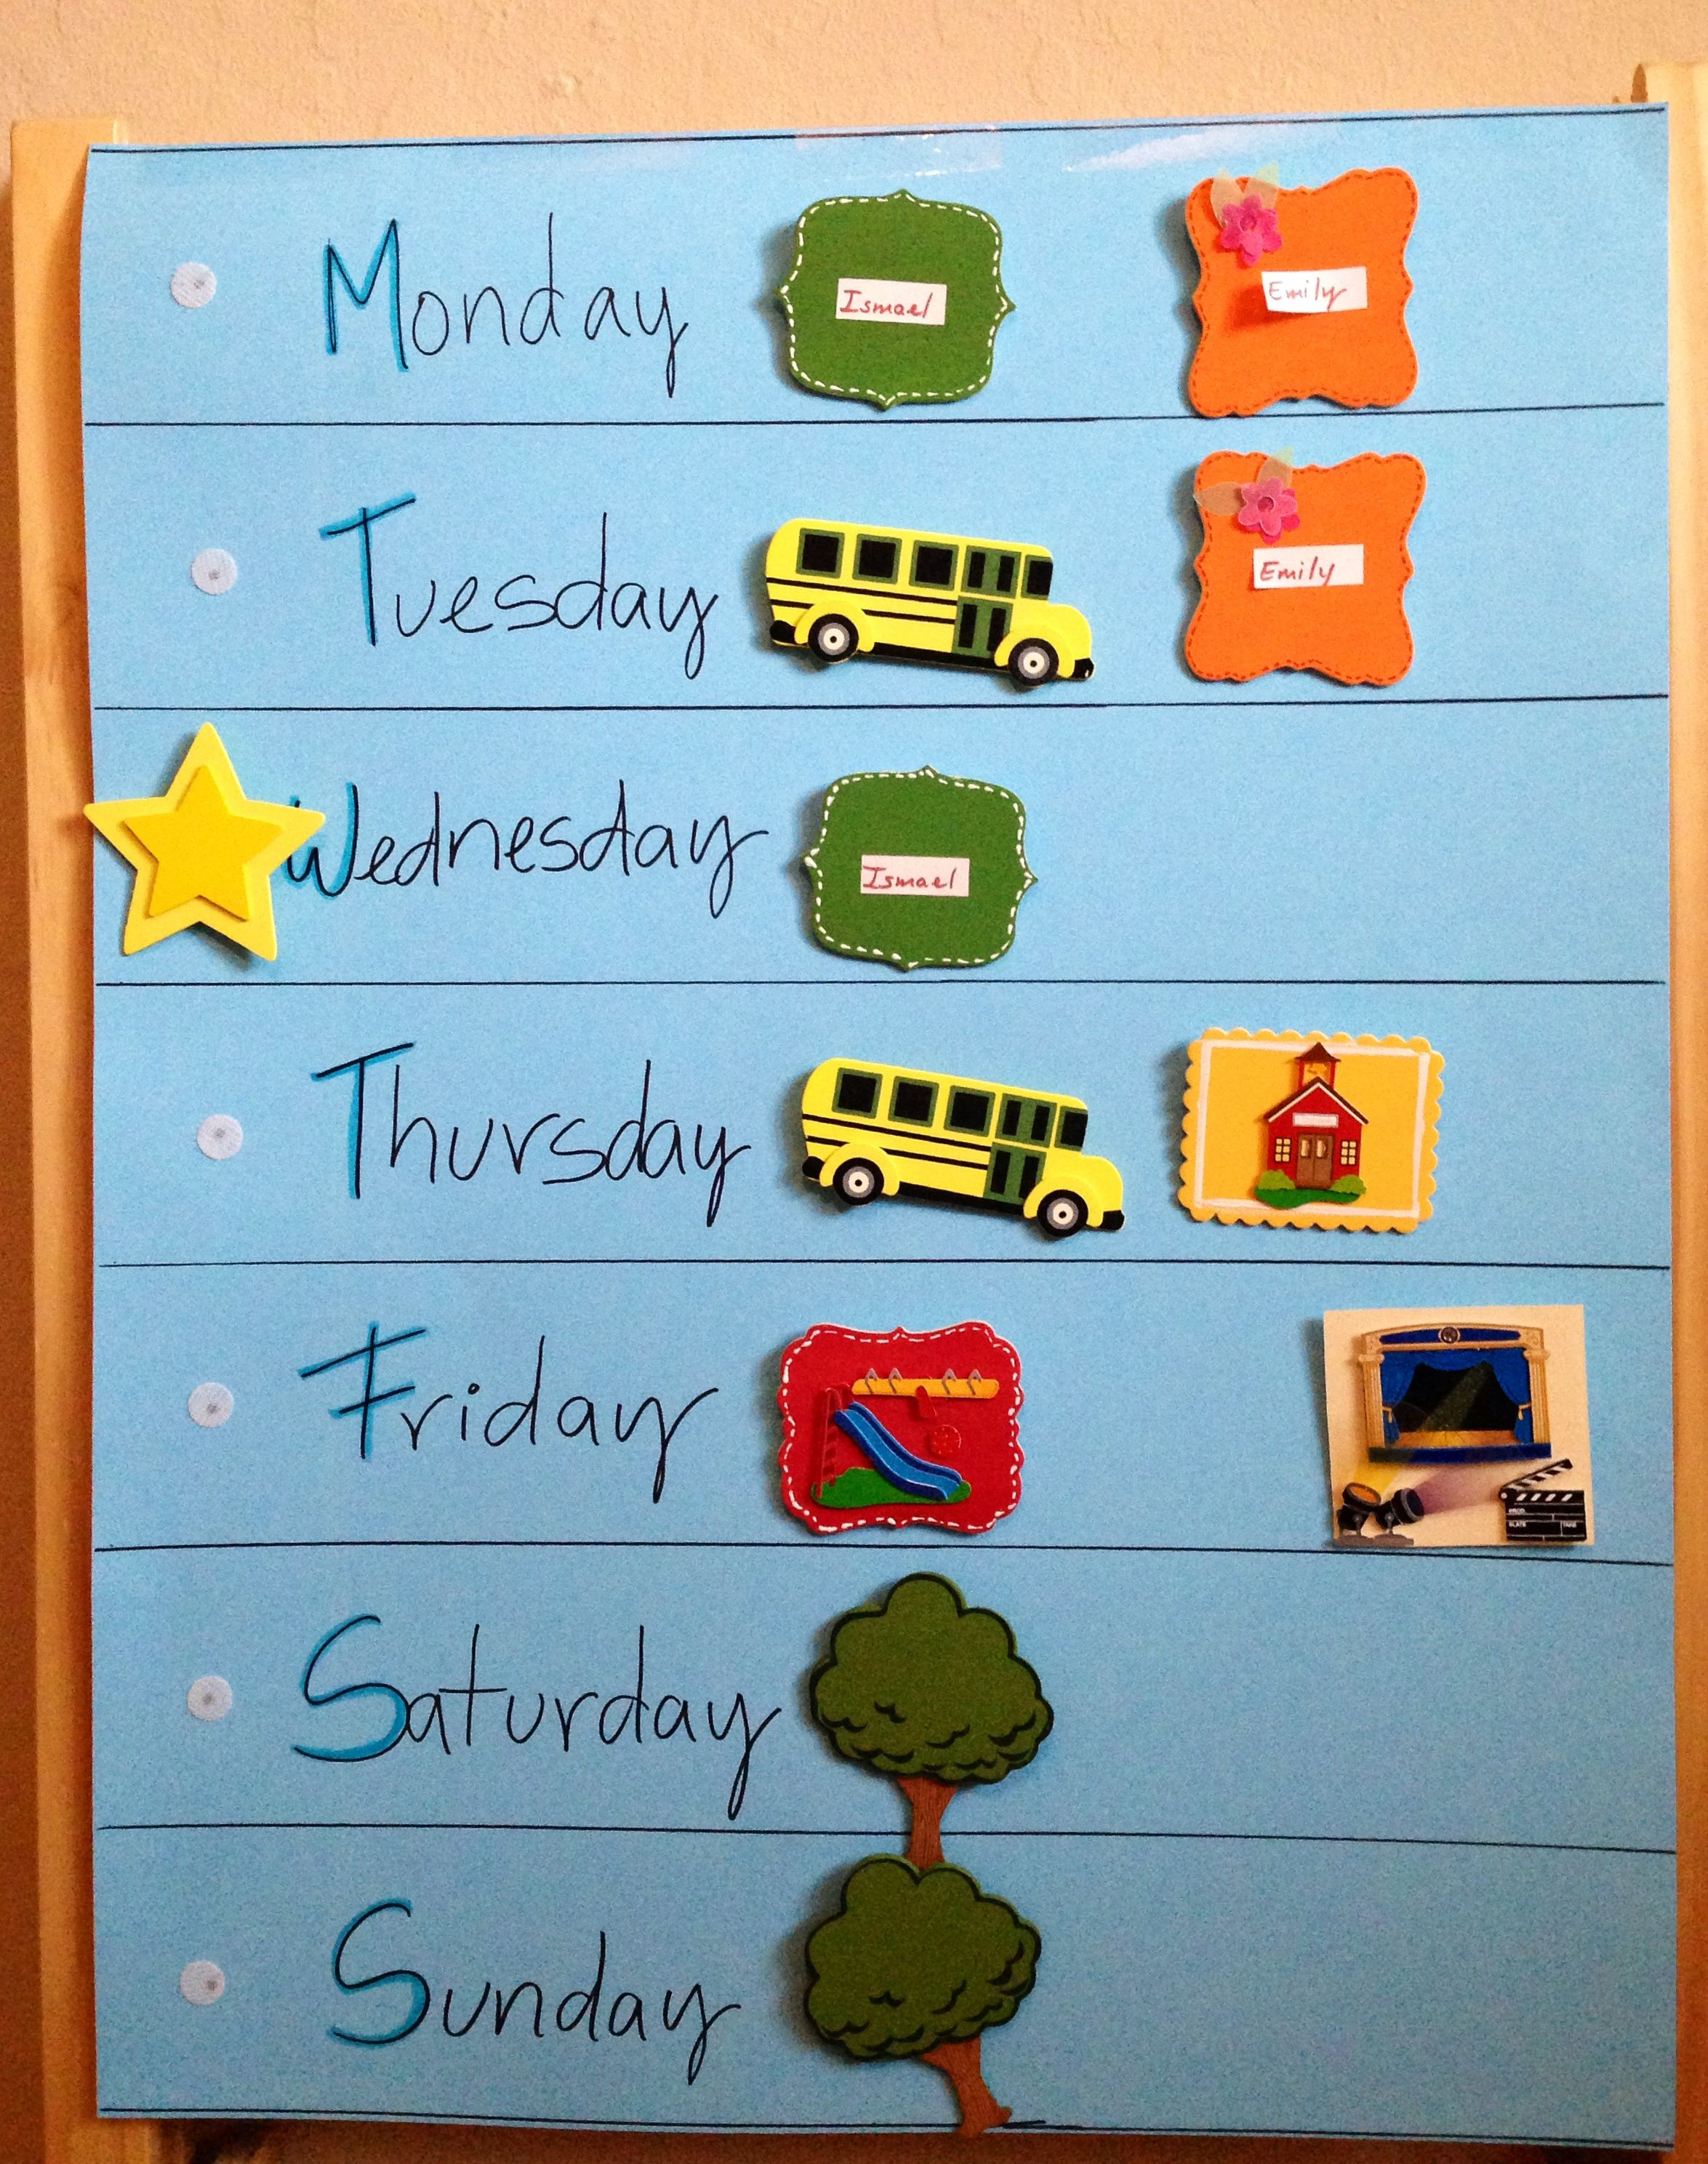 Kinderzimmer Planer Weekly Calendar For Kids Kinderzimmer Pinterest